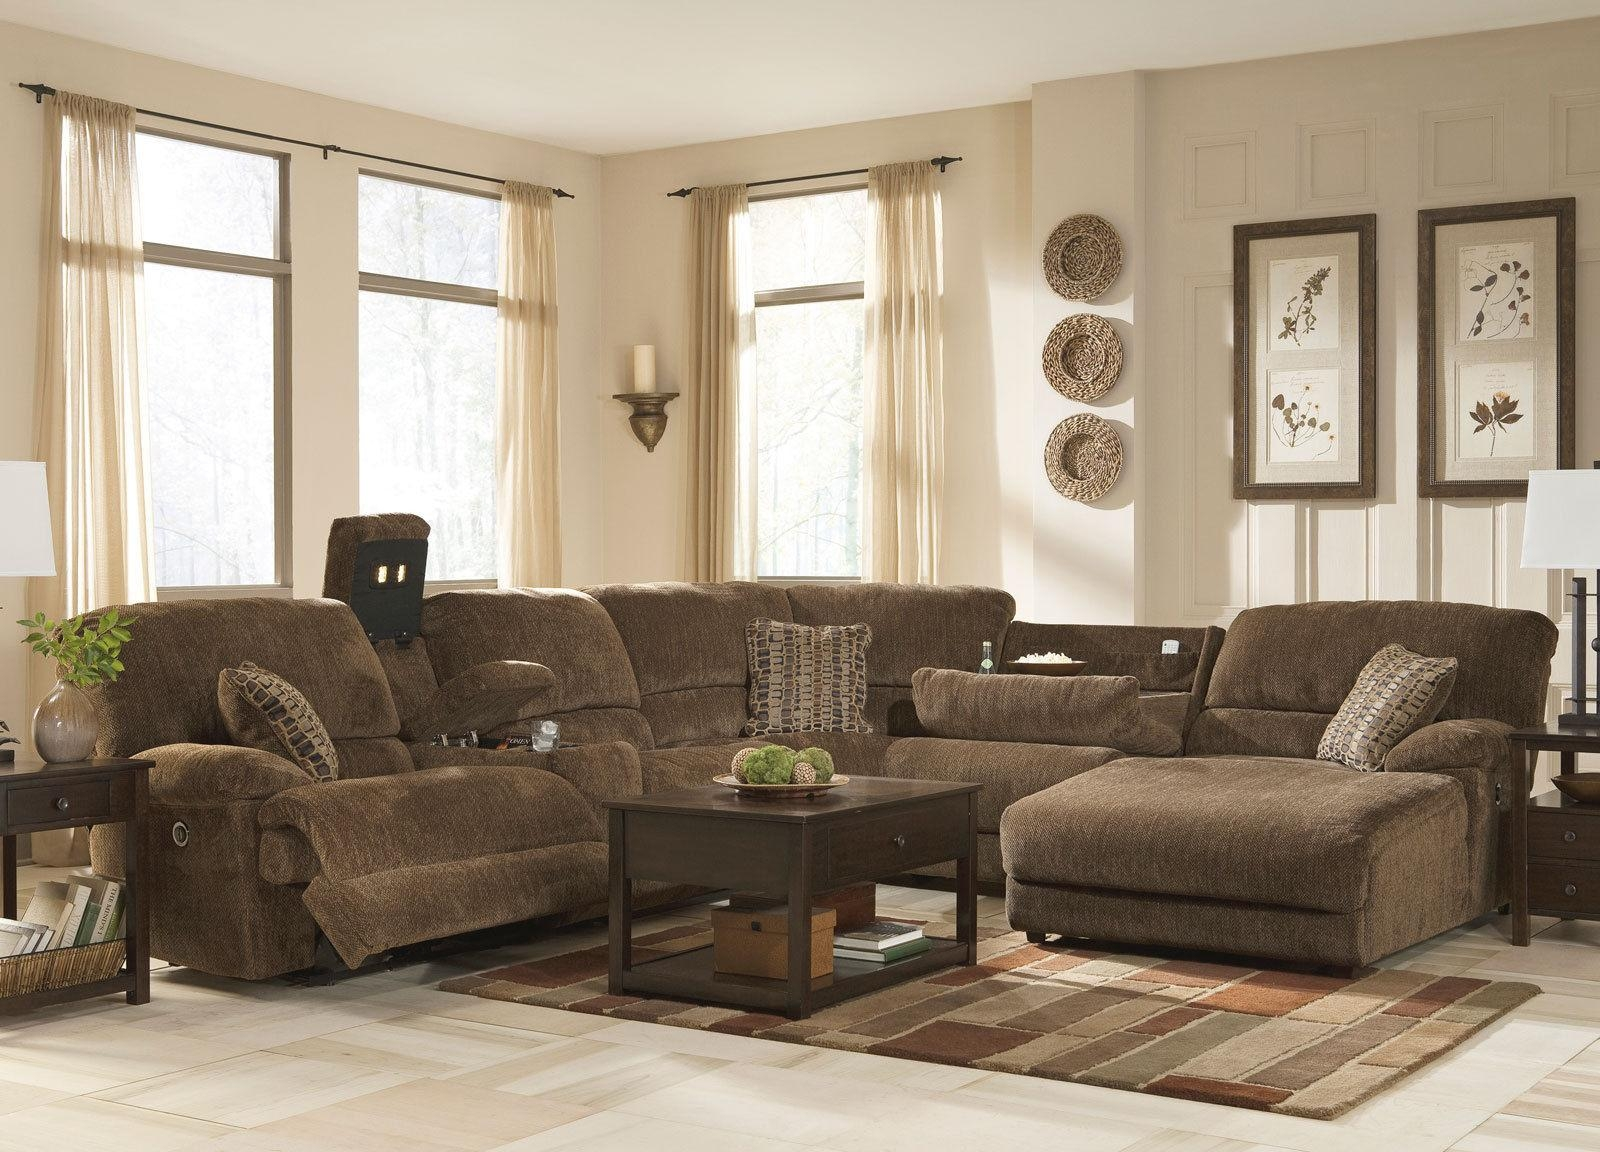 20 ideas of chenille sectional sofas sofa ideas for Apartment size sectional sofa with chaise